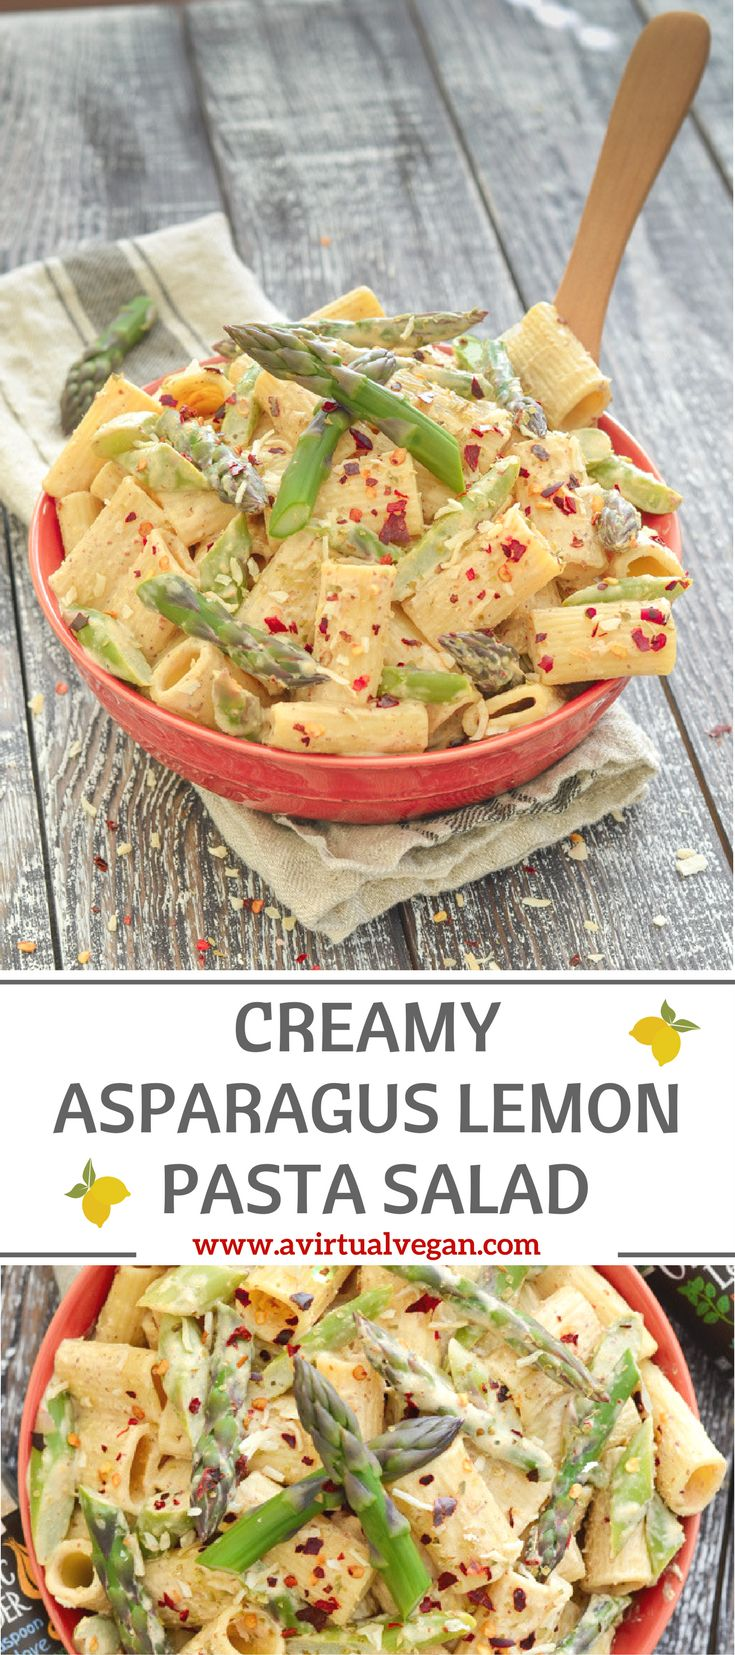 This Creamy Asparagus Lemon Pasta Salad is fresh & delicious, super easy to make, and perfect for quick mid week meals, make ahead lunches and gatherings! via @avirtualvegan #ad #SpiceUpSummer #CookWithPurpose